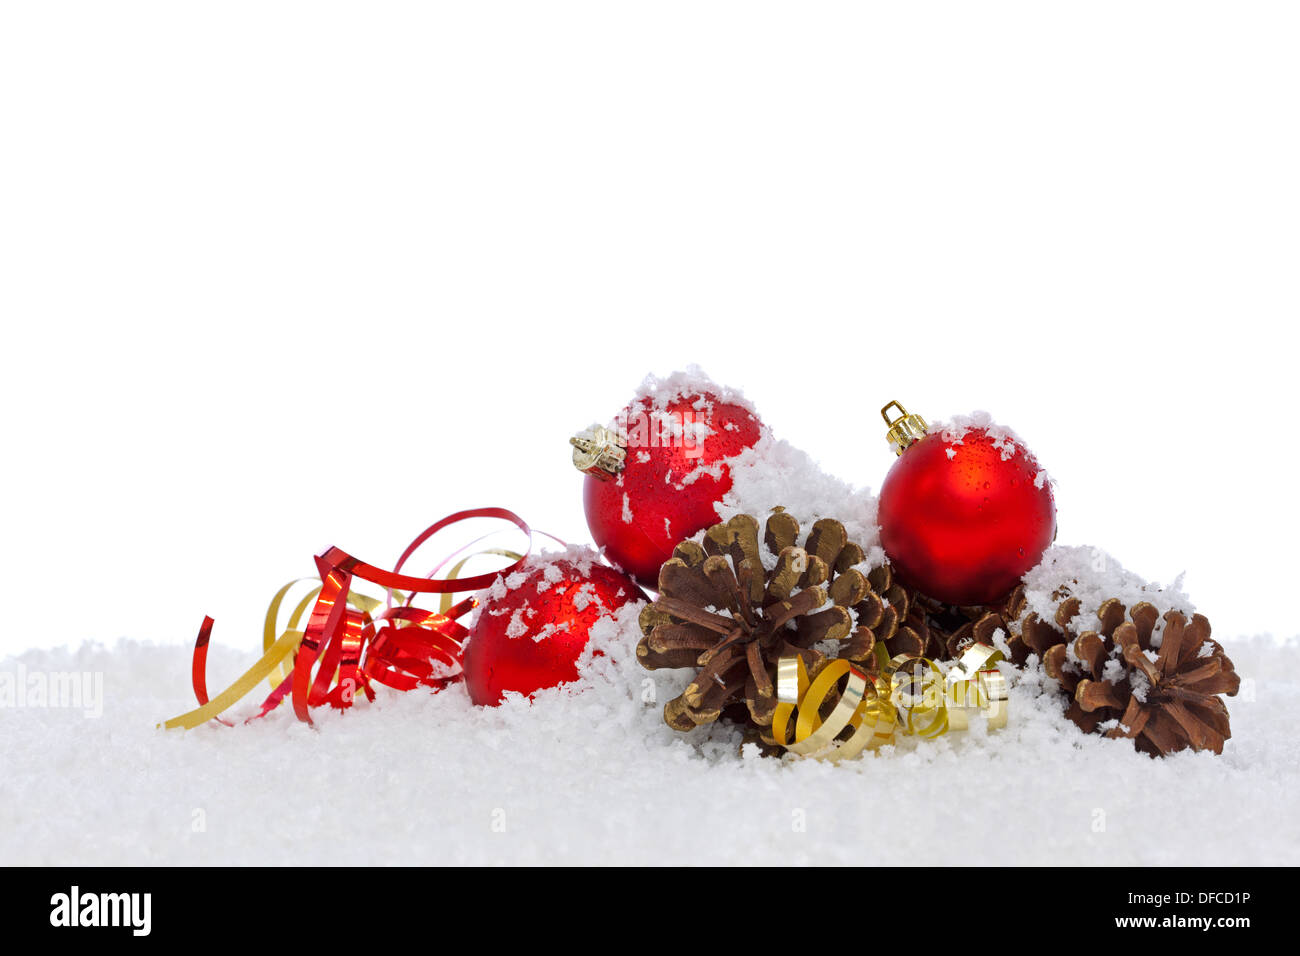 Christmas decorations on snow isolated against a white background. - Stock Image